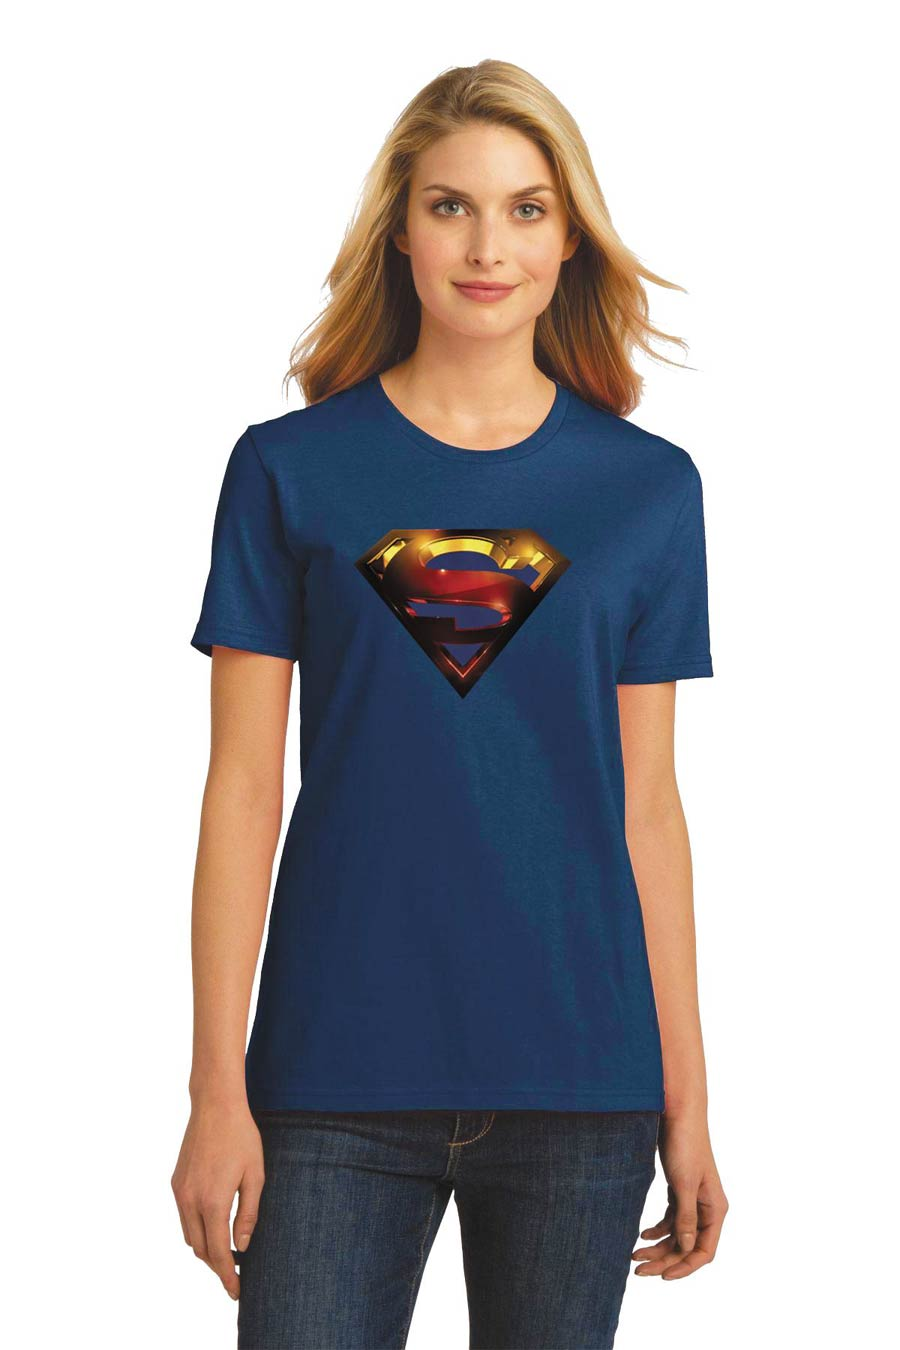 Supergirl 3-D Symbol Womens T-Shirt Large